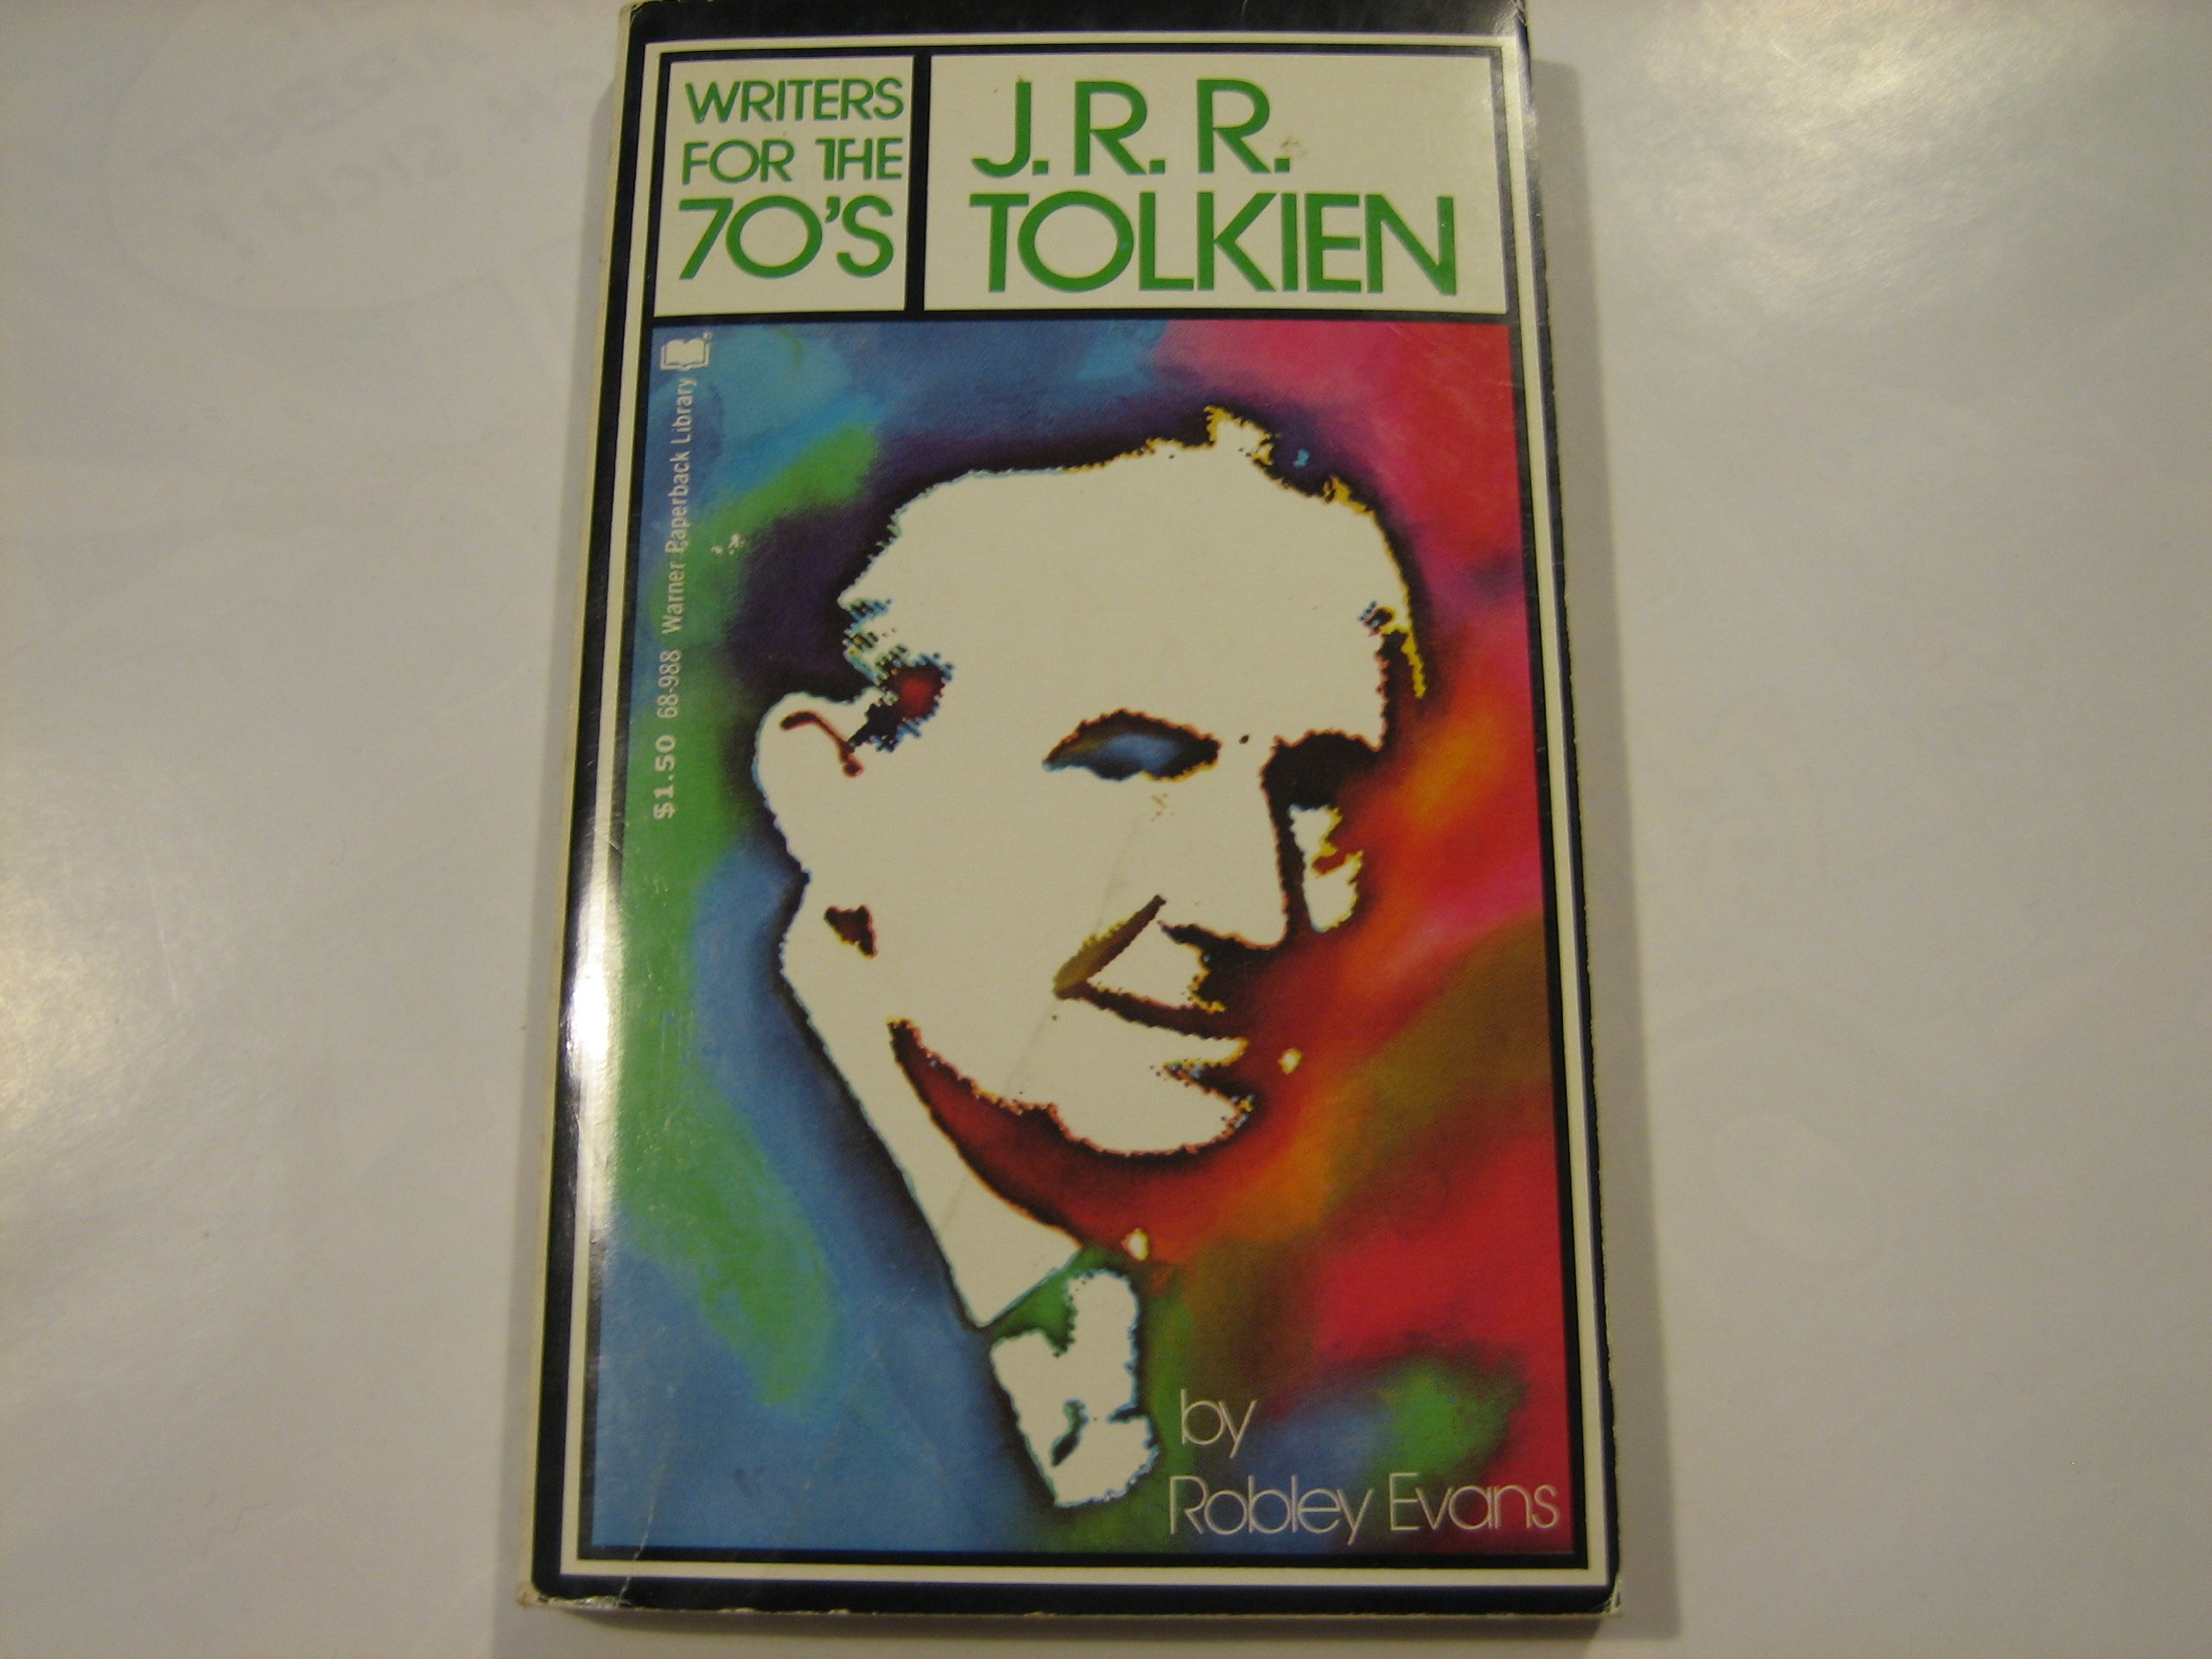 J. R. R. Tolkien (Writers for the 70s), Robley Evans